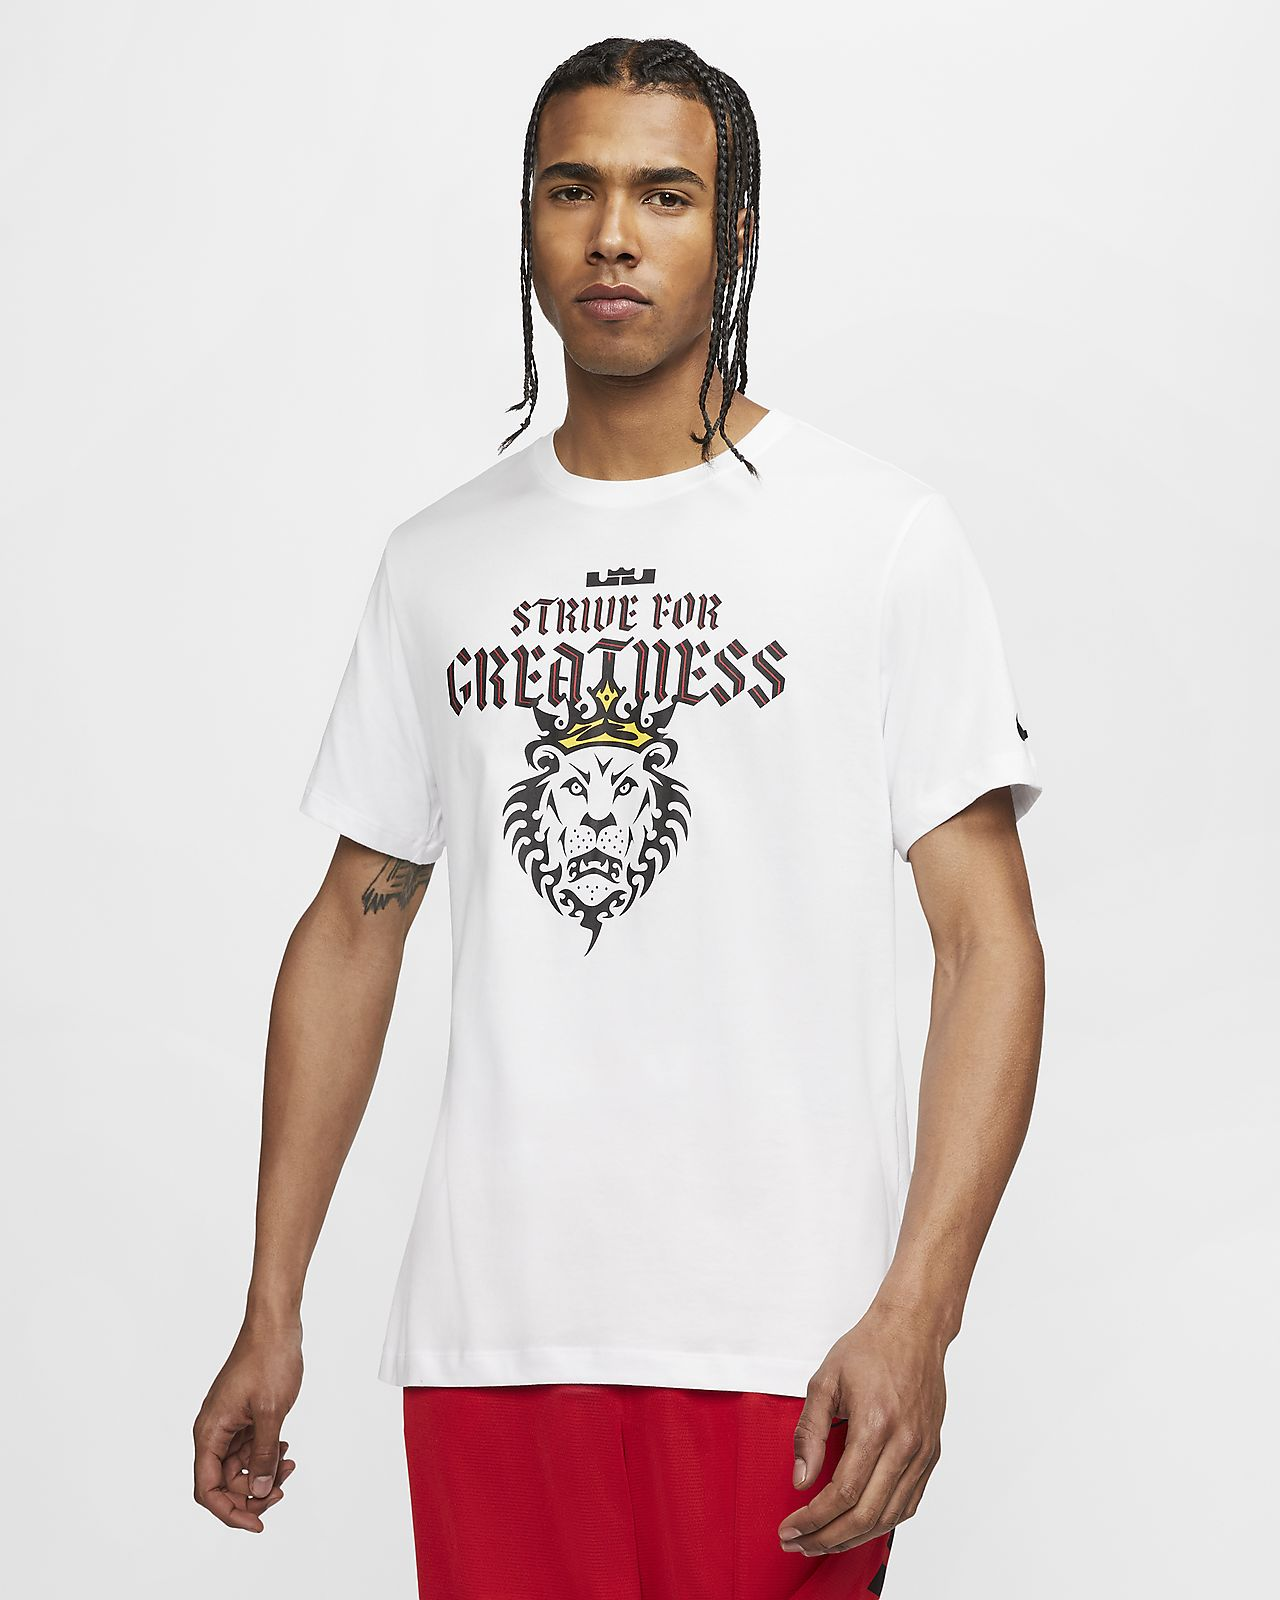 Nike Dri-FIT LeBron Strive For Greatness Basketball T-Shirt